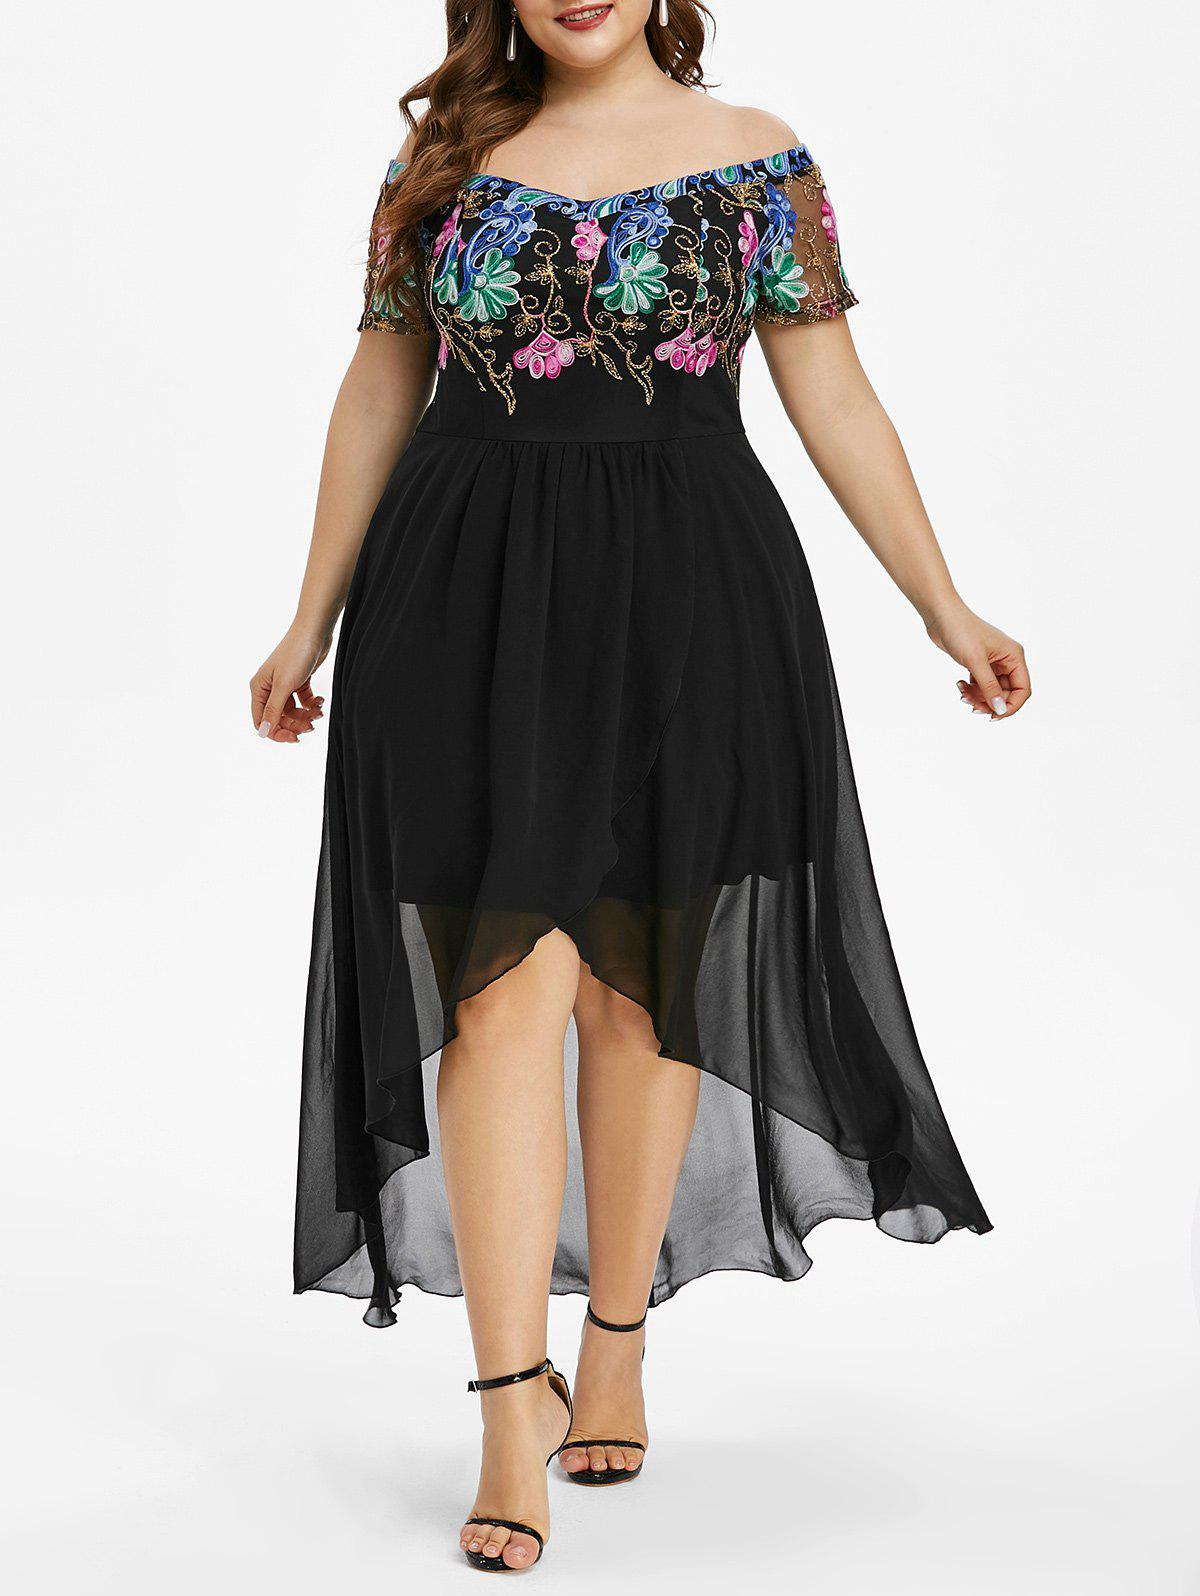 Plus Size Off The Shoulder Embroidered High Low Party Dress - BLACK 5X